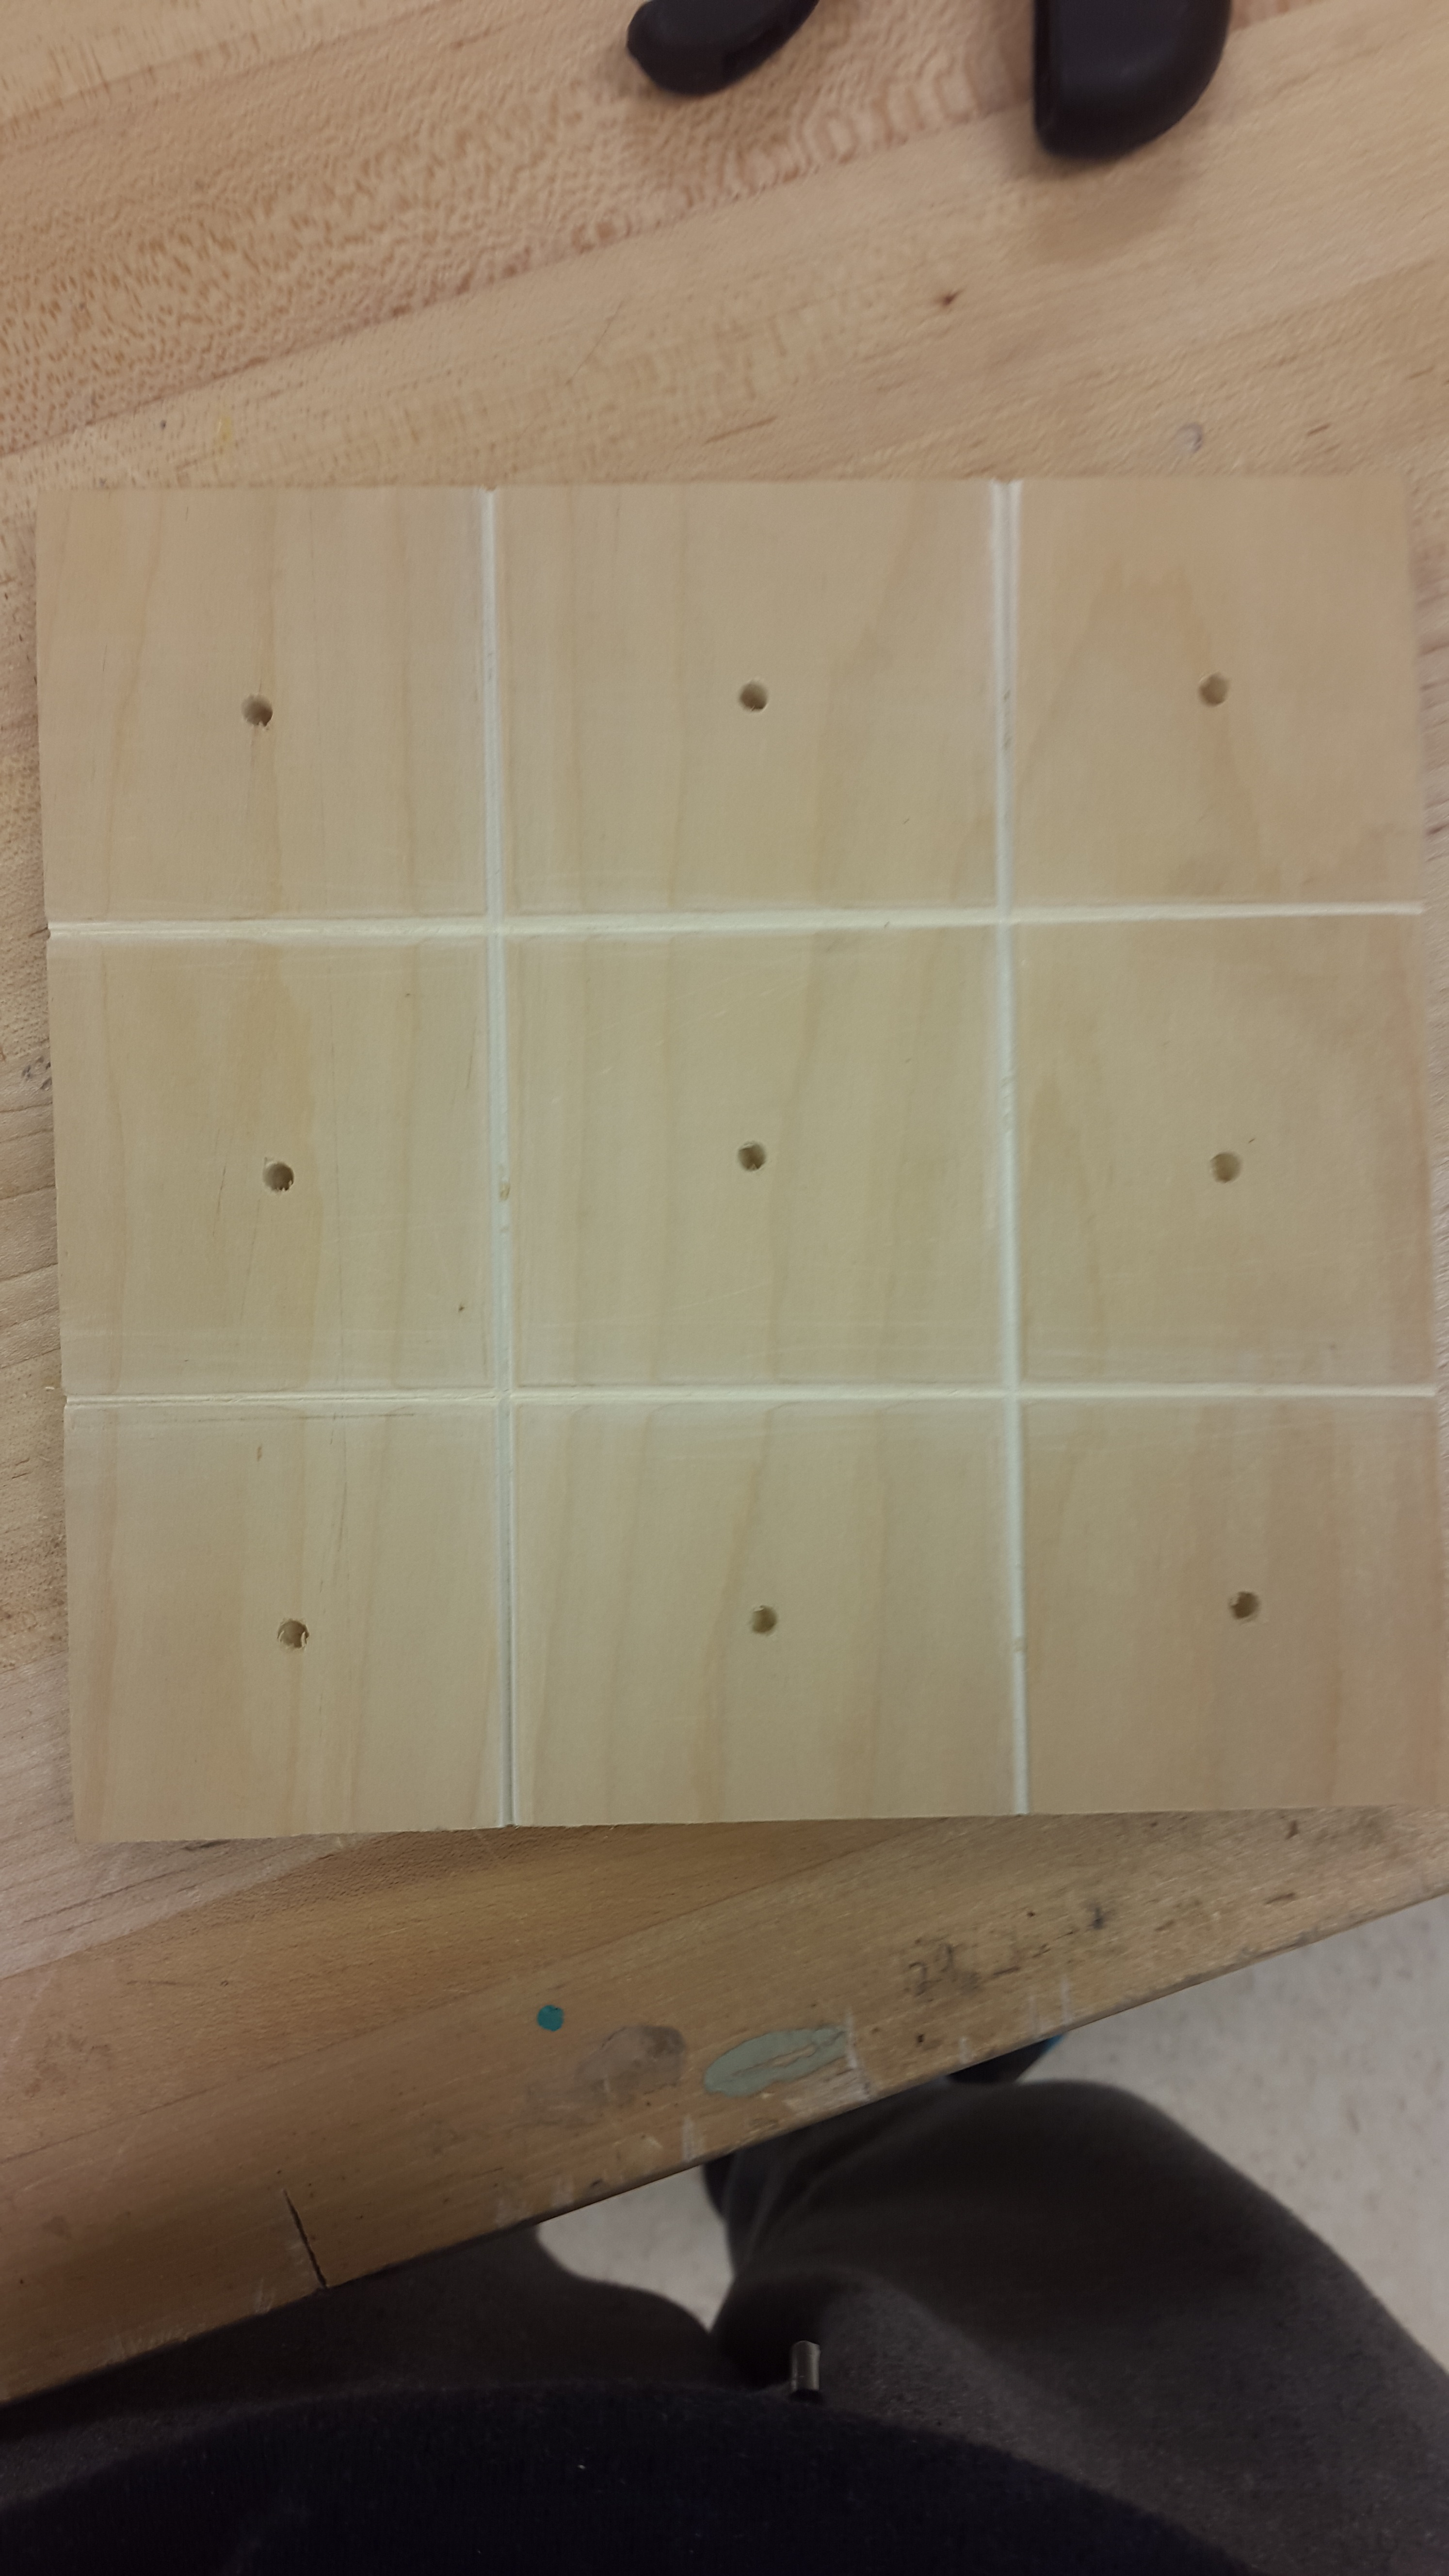 Picture of Homemade Tic-tac-toe Board